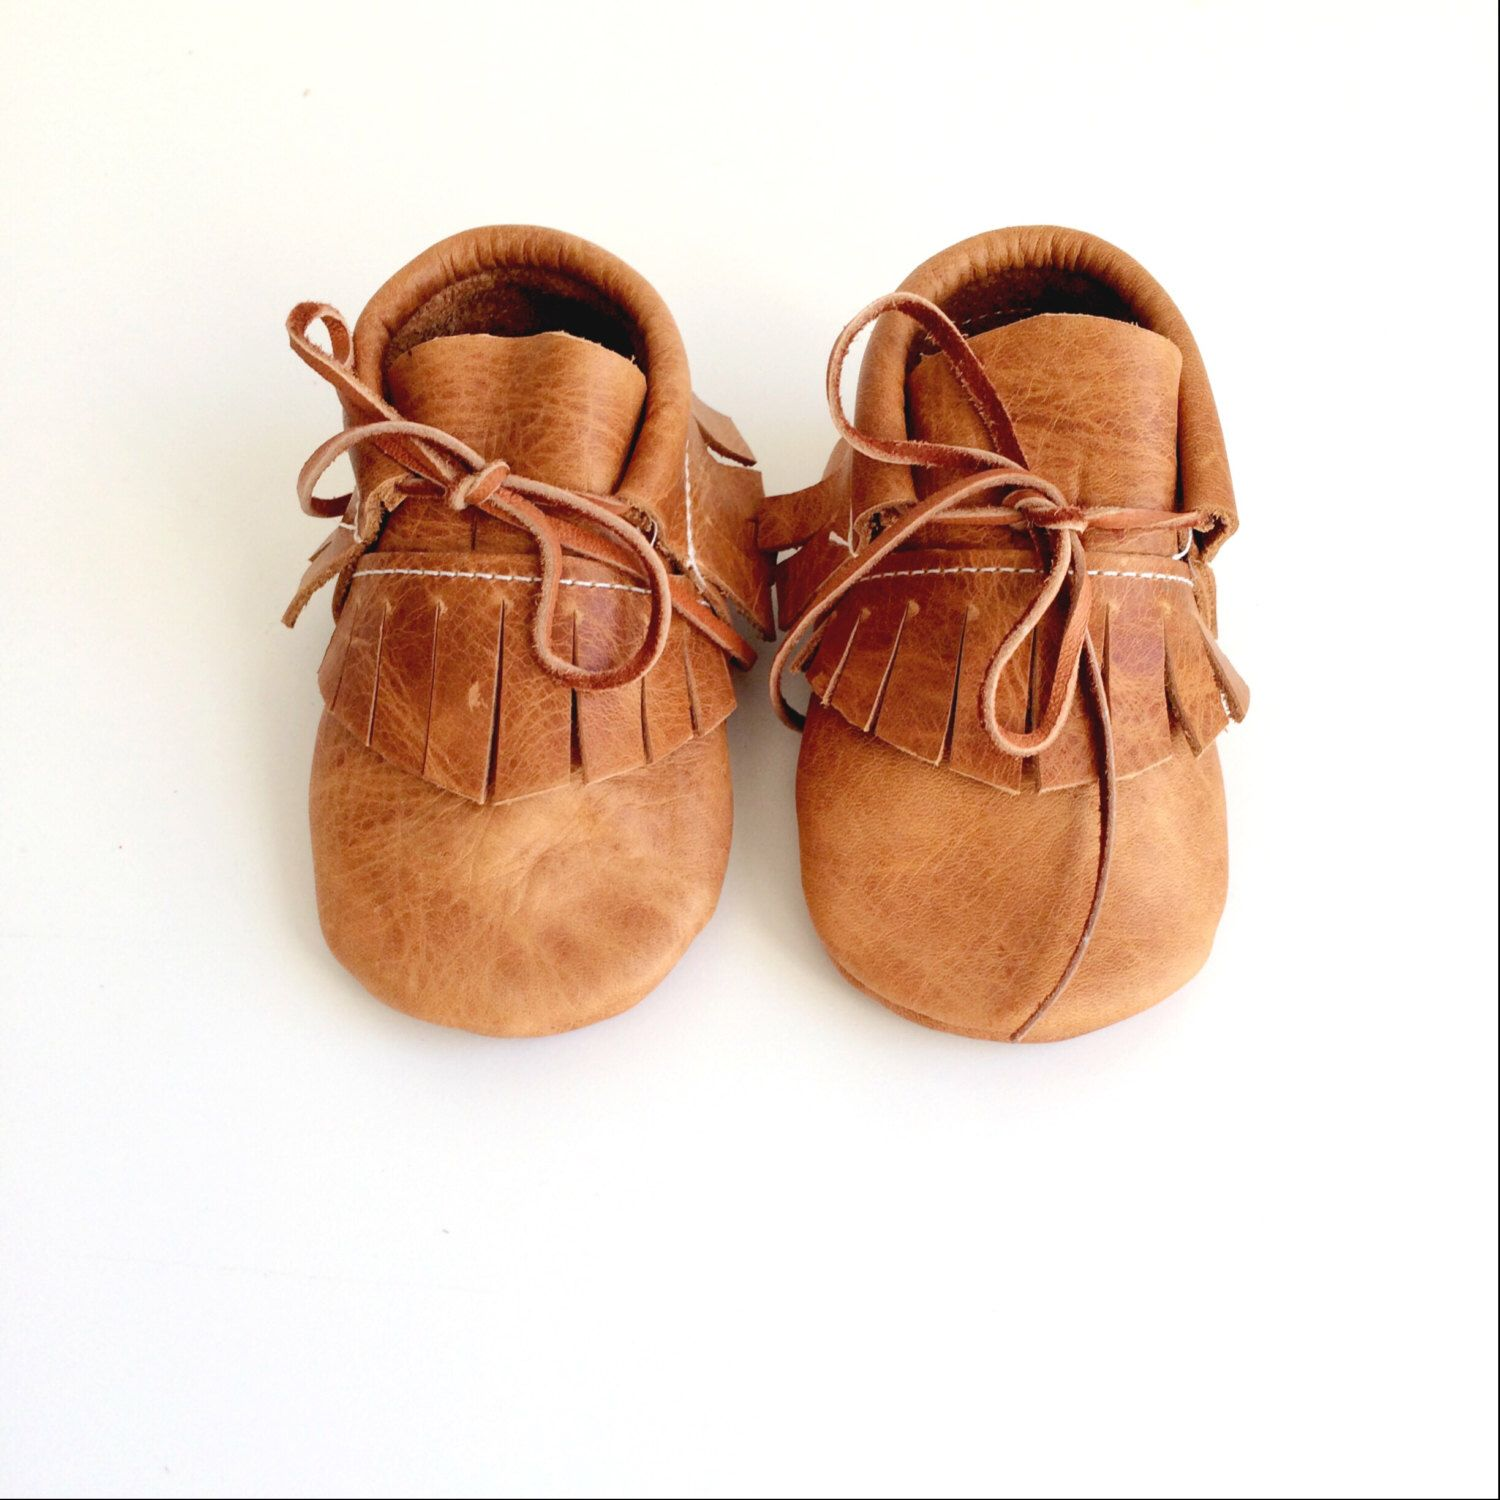 Soft sole handmade leather and suede baby and toddler moccasin shoes and house slippers also make a great gift for baby showers and moms. When buying authentic Native American baby moccasin shoes or soft sole house slippers for infants or walking toddlers, you do not want to buy cheap, poorly made moccasins.